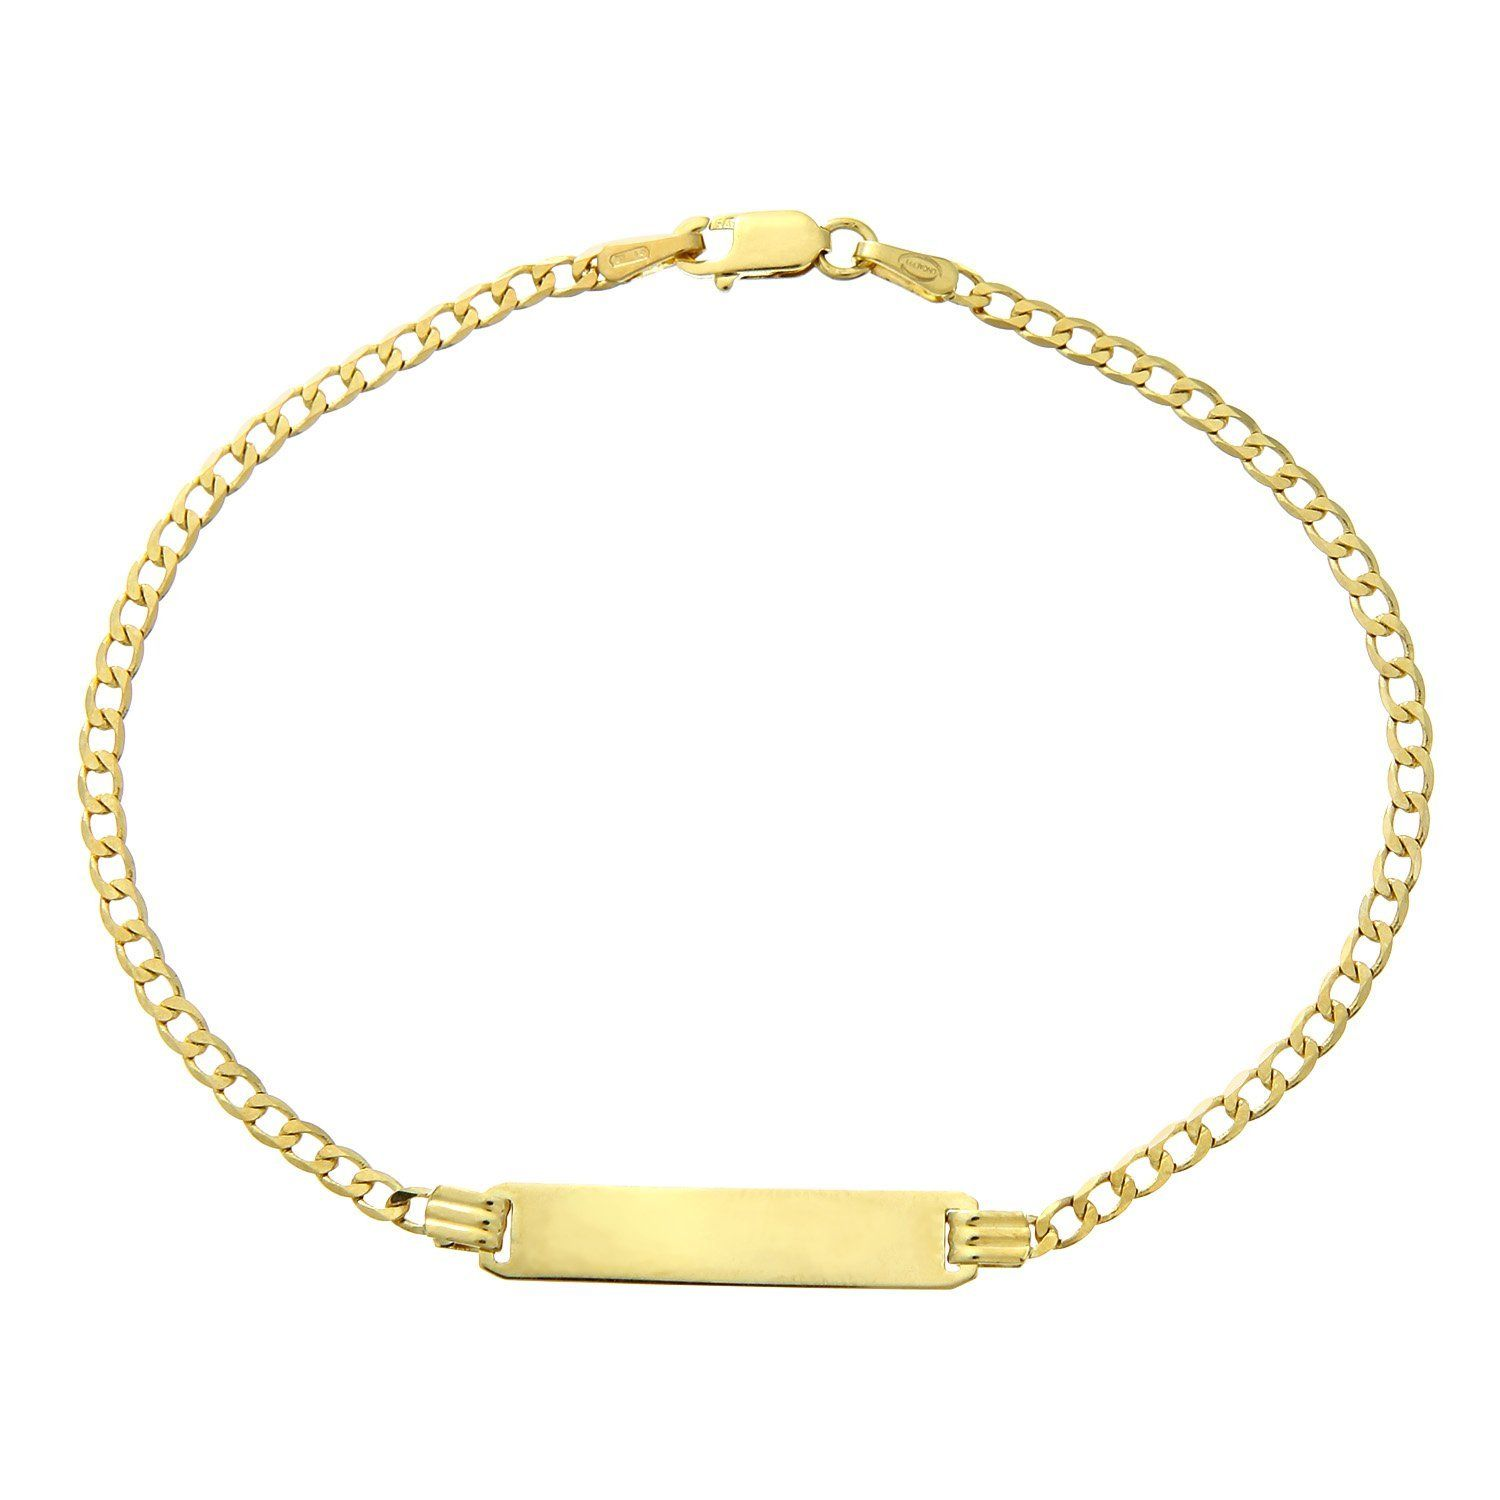 Citerna 9 ct Yellow Gold Curb ID Bracelet of 7.5 Inch/19 cm Length and 0.6 cm Width bLCFLNn8